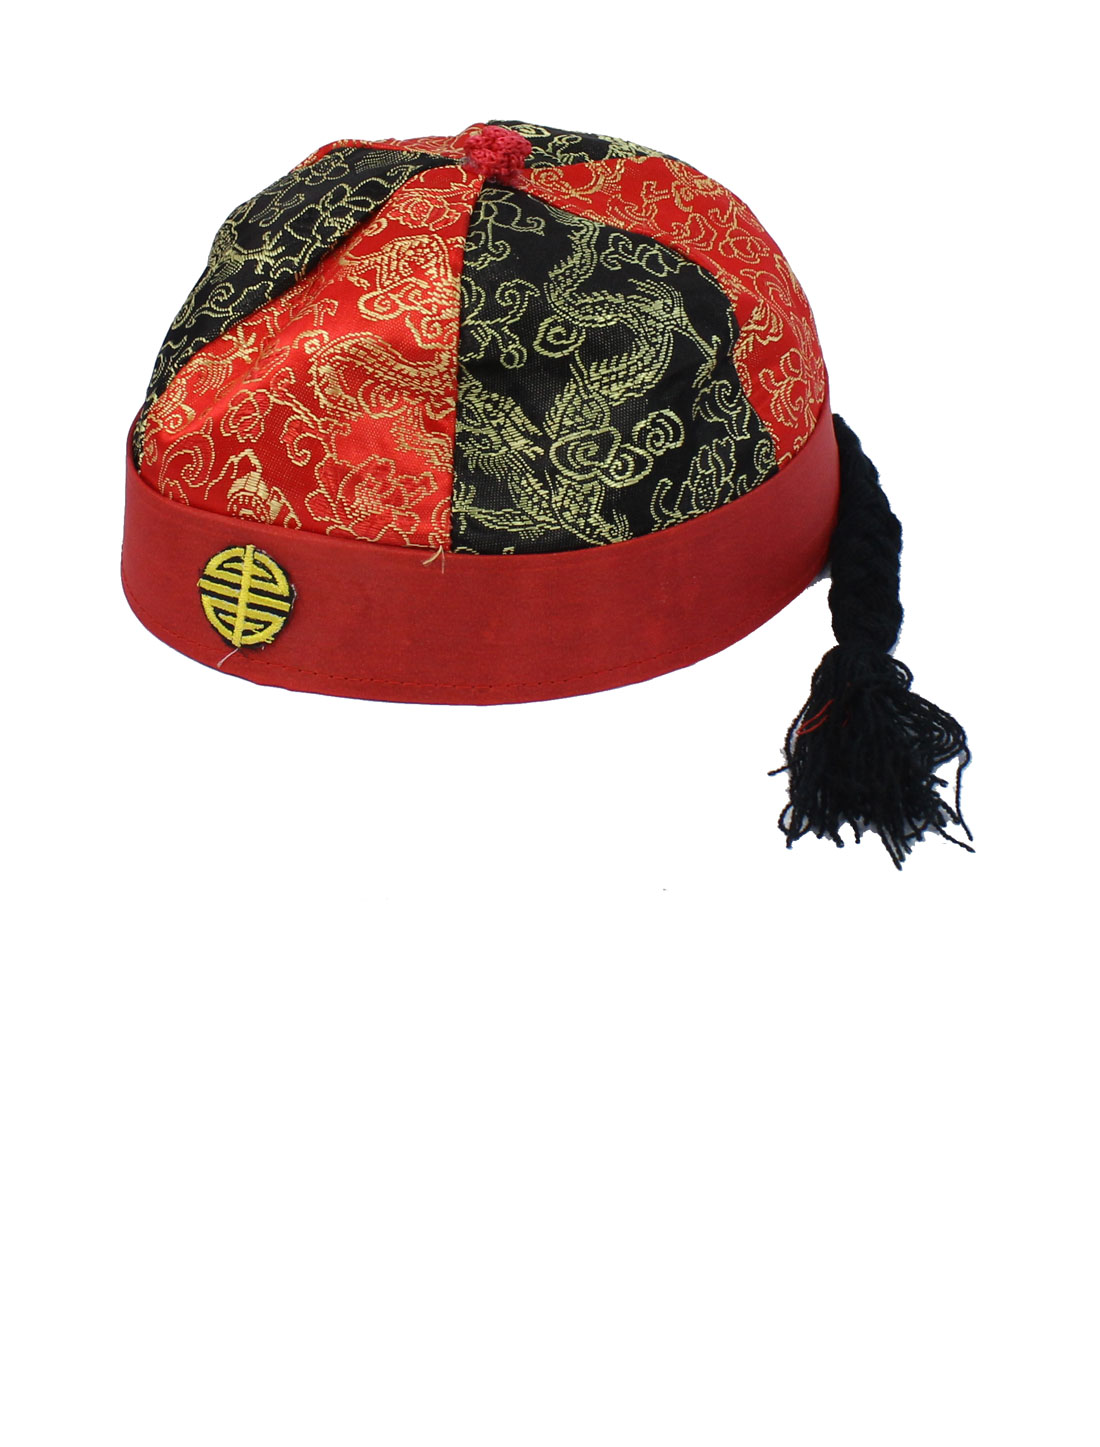 Feast Dragon Pattern Chinese Landlord Oriental Hat Cap Party Costume Red